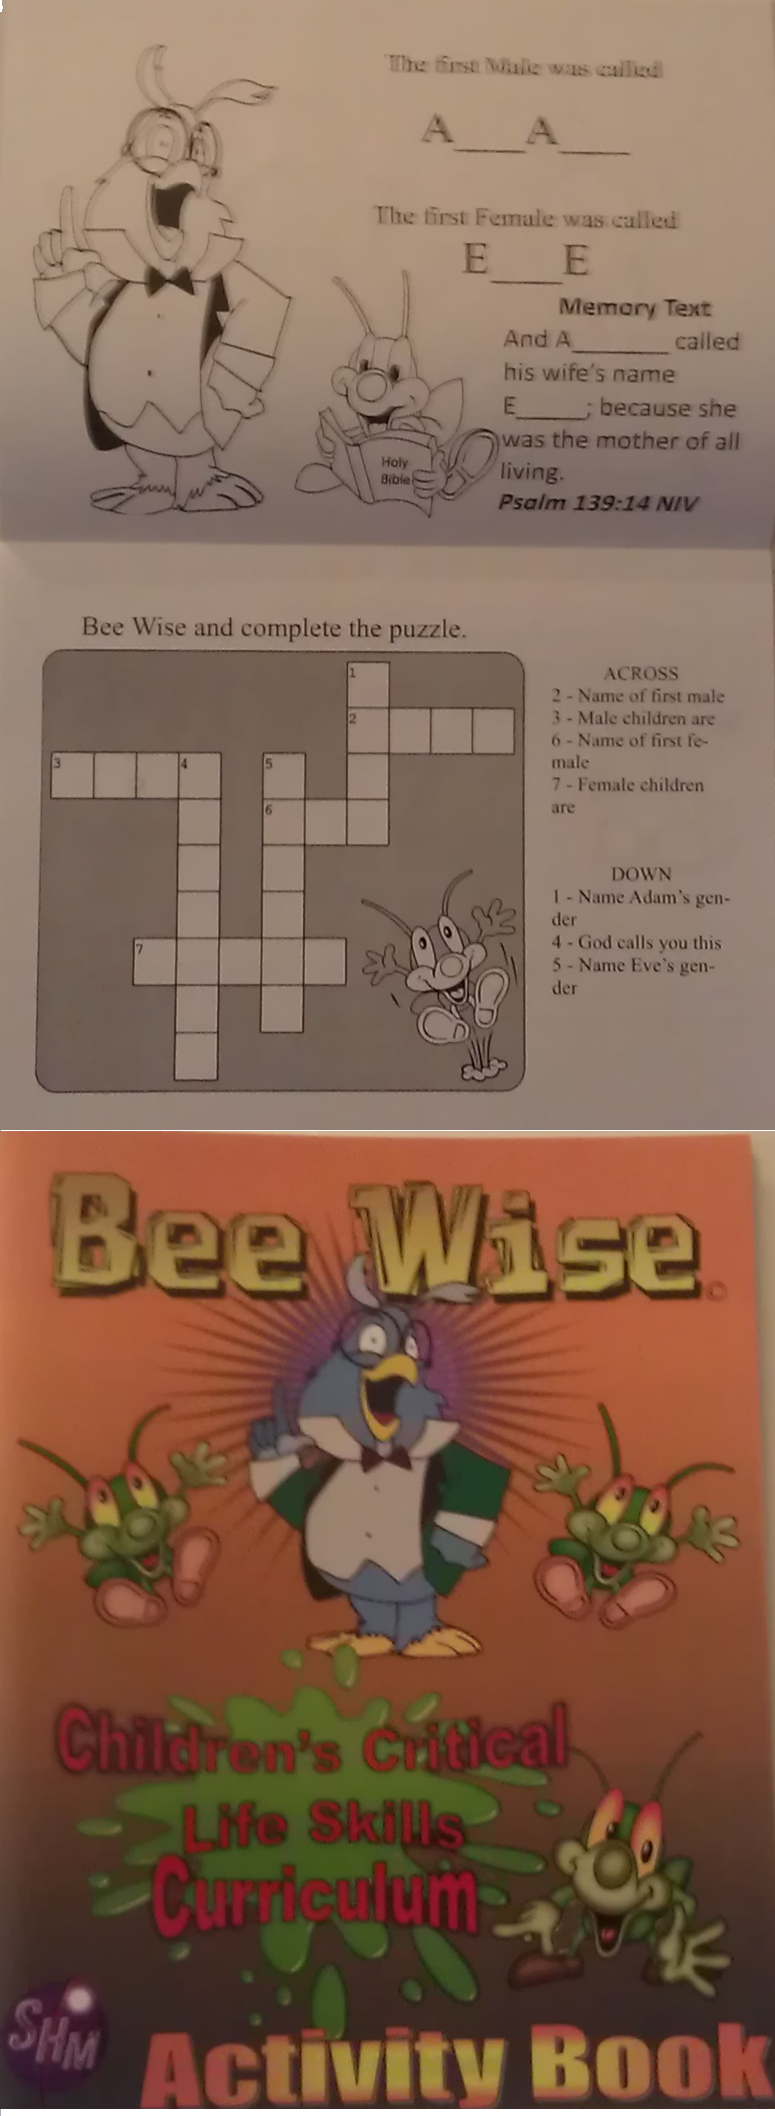 Bee Wise Children's Activity Book